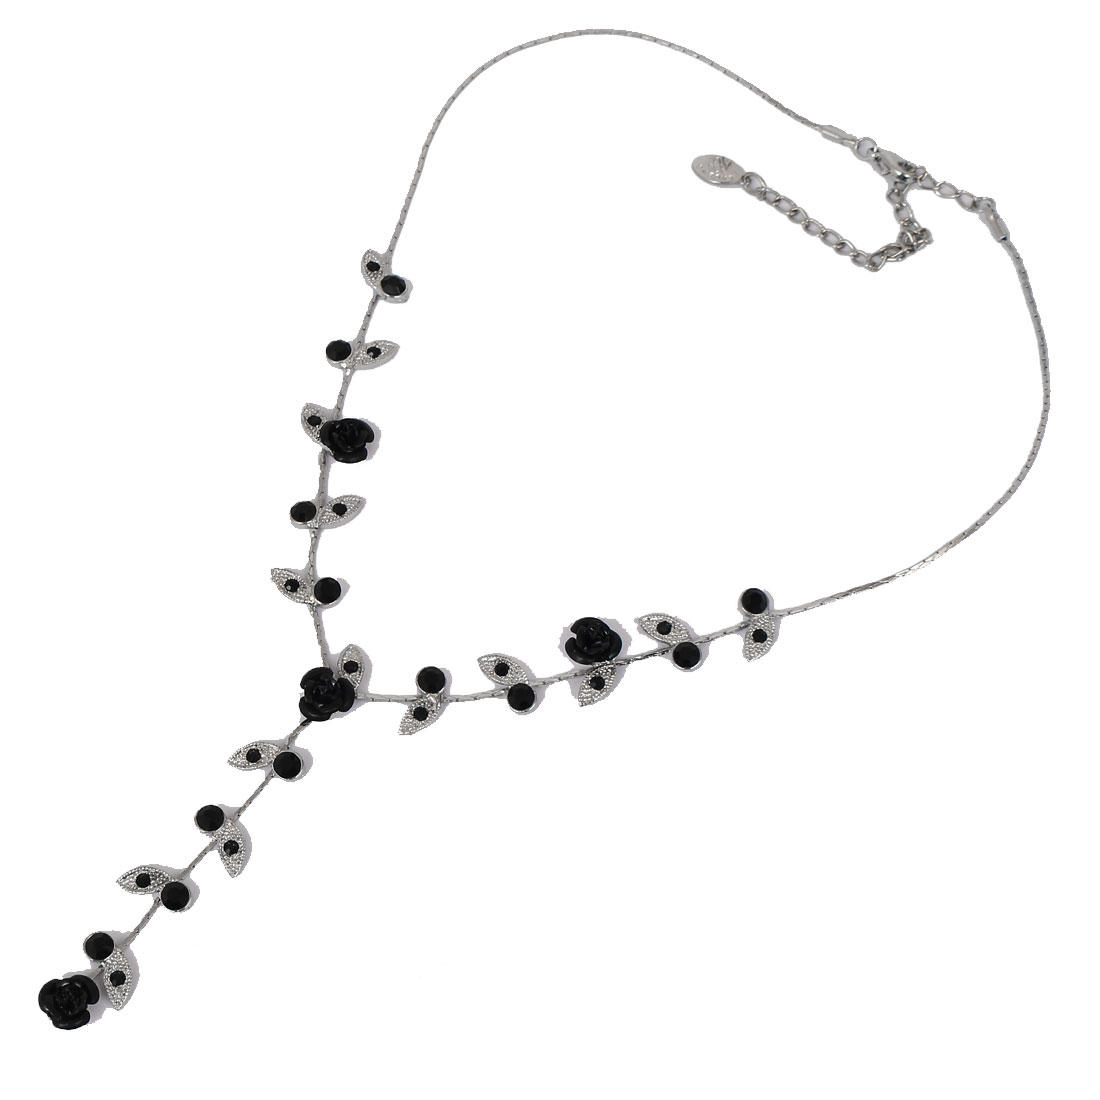 Fashion Jewelry Rose Flower Leaf Crystal Pendant Lobster Clasp Necklace Black